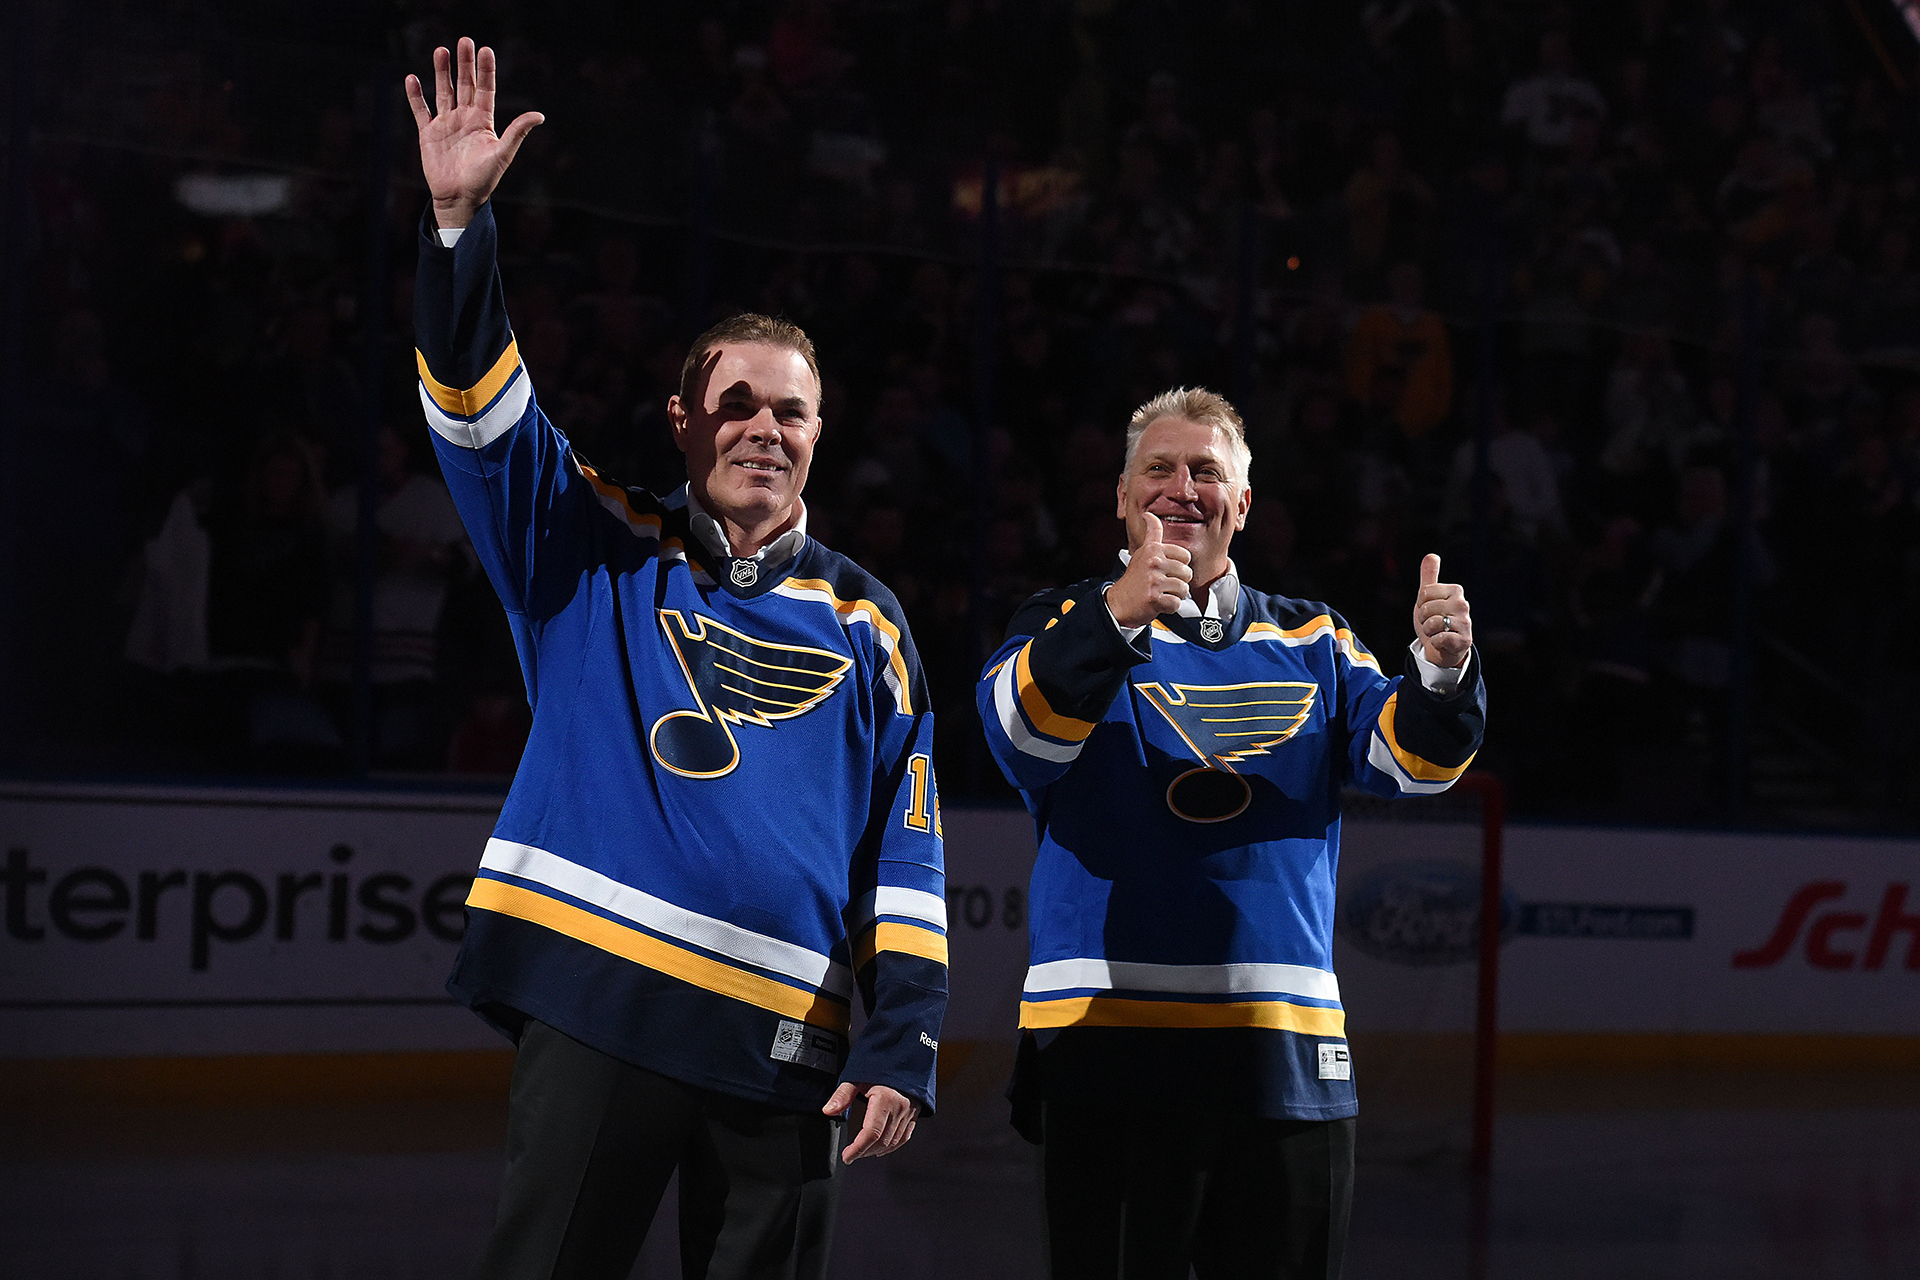 01 April, 2016: Former Blues stars Adam Oates and Brett Hull before a NHL game between the Boston Bruins and the St. Louis Blues at Scottrade Center in St. Louis. Boston won, 6-5. (Photo by Keith Gillett/Icon Sportswire) (Icon Sportswire via AP Images)